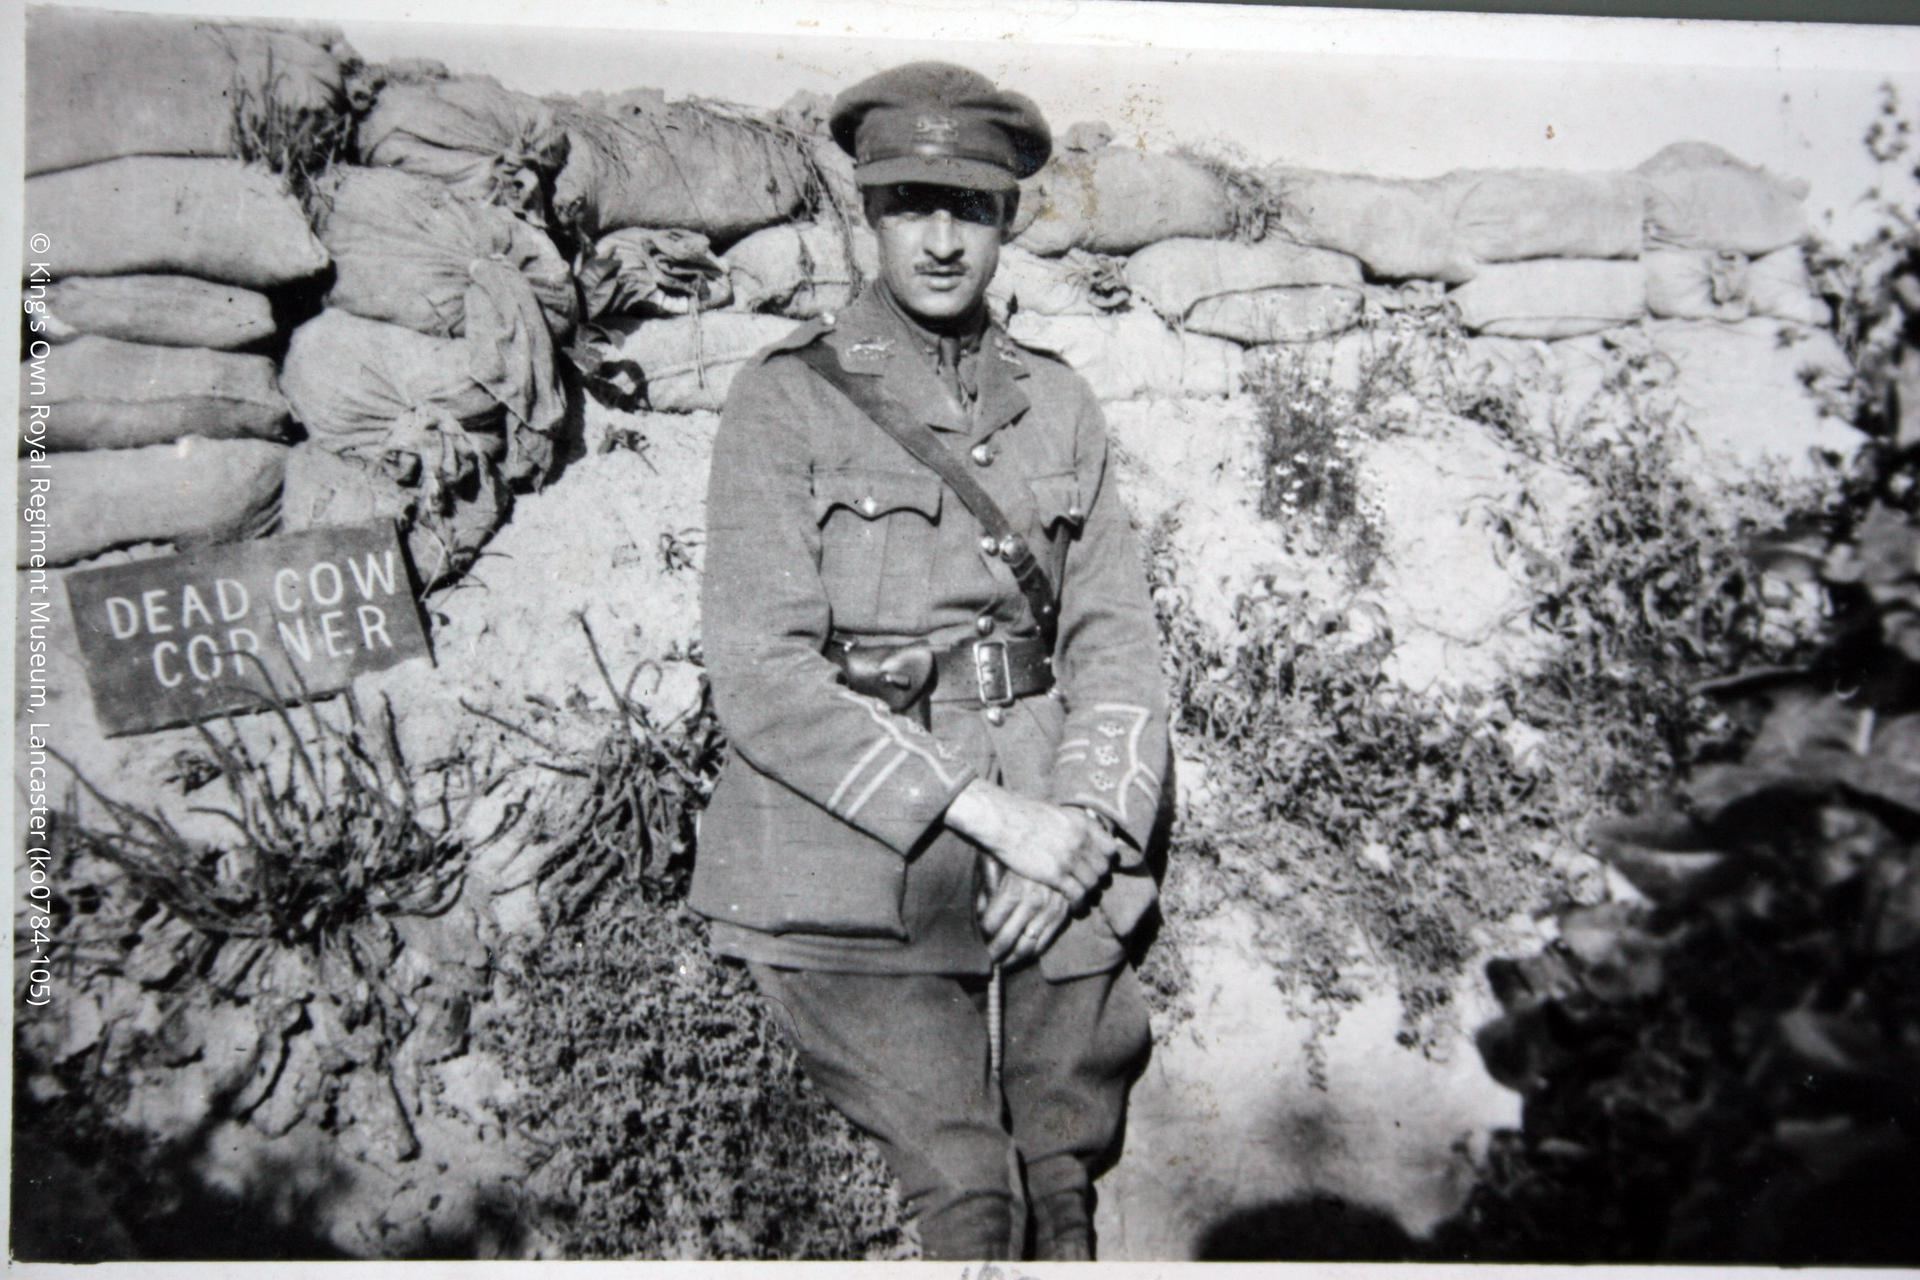 Photograph of Captain W Fawcett of the King's Own Royal Lancaster Regiment, pictured at Dead Cow Corner via Gallia trench. Fawcett was in the 1/5th Battalion, a Territorial unit, which he had joined in 1907.  Fawcett's battalion served from February 1915 until the war's end in France and Flanders and saw action in the major battles of Ypres, the Somme and Cambrai.  Fawcett survived the war and in 1919 became a Draft Conducting Officer for the battalion.